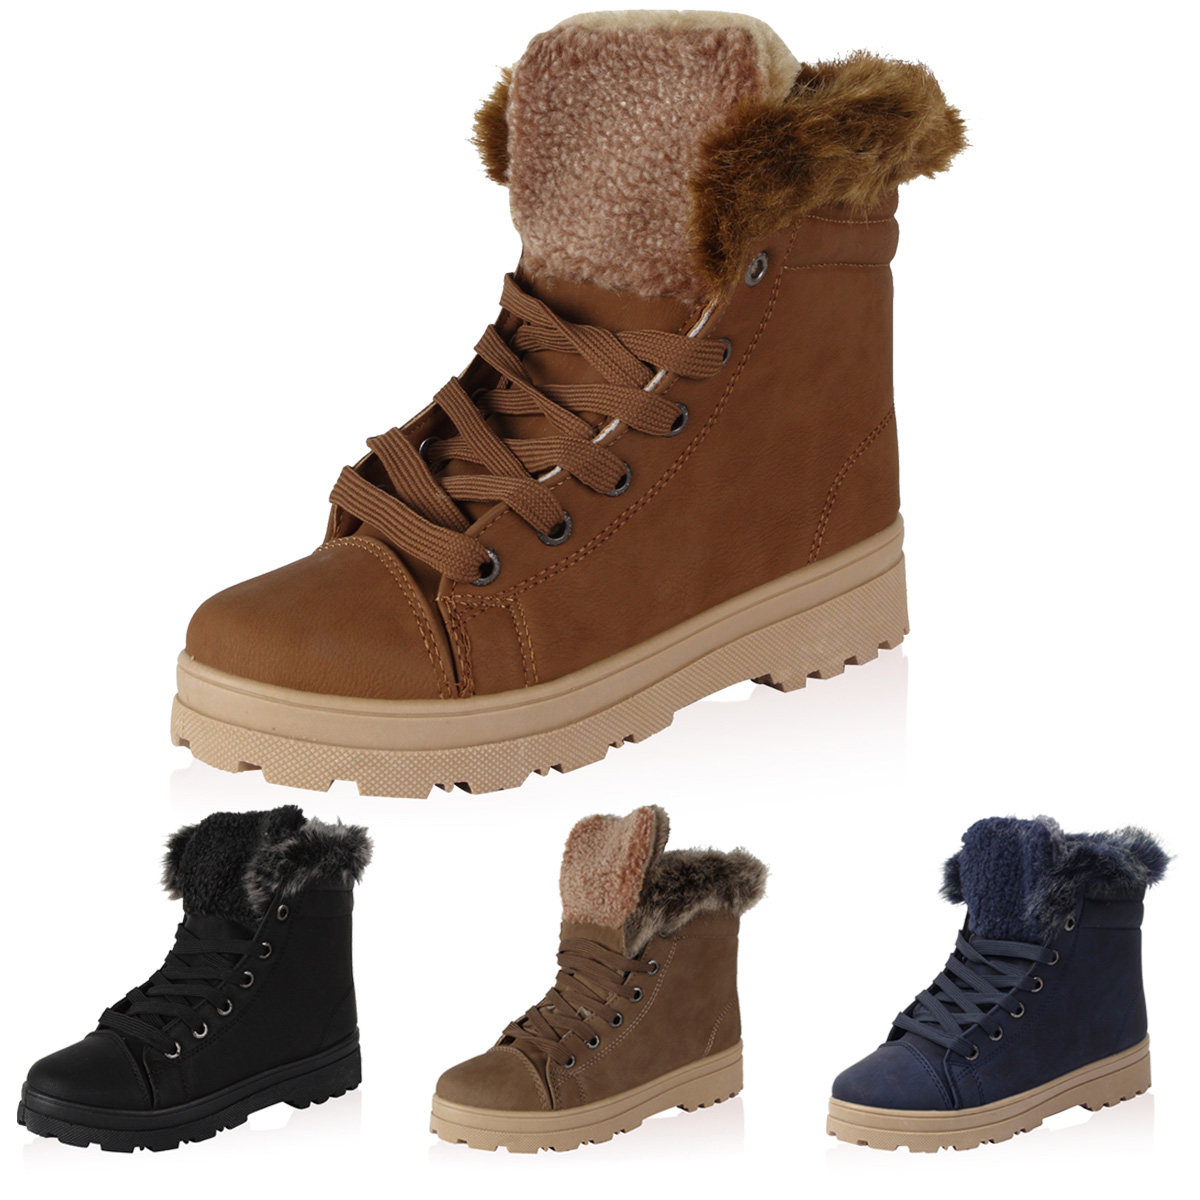 Winter Ankle Boots D1r6lWuT